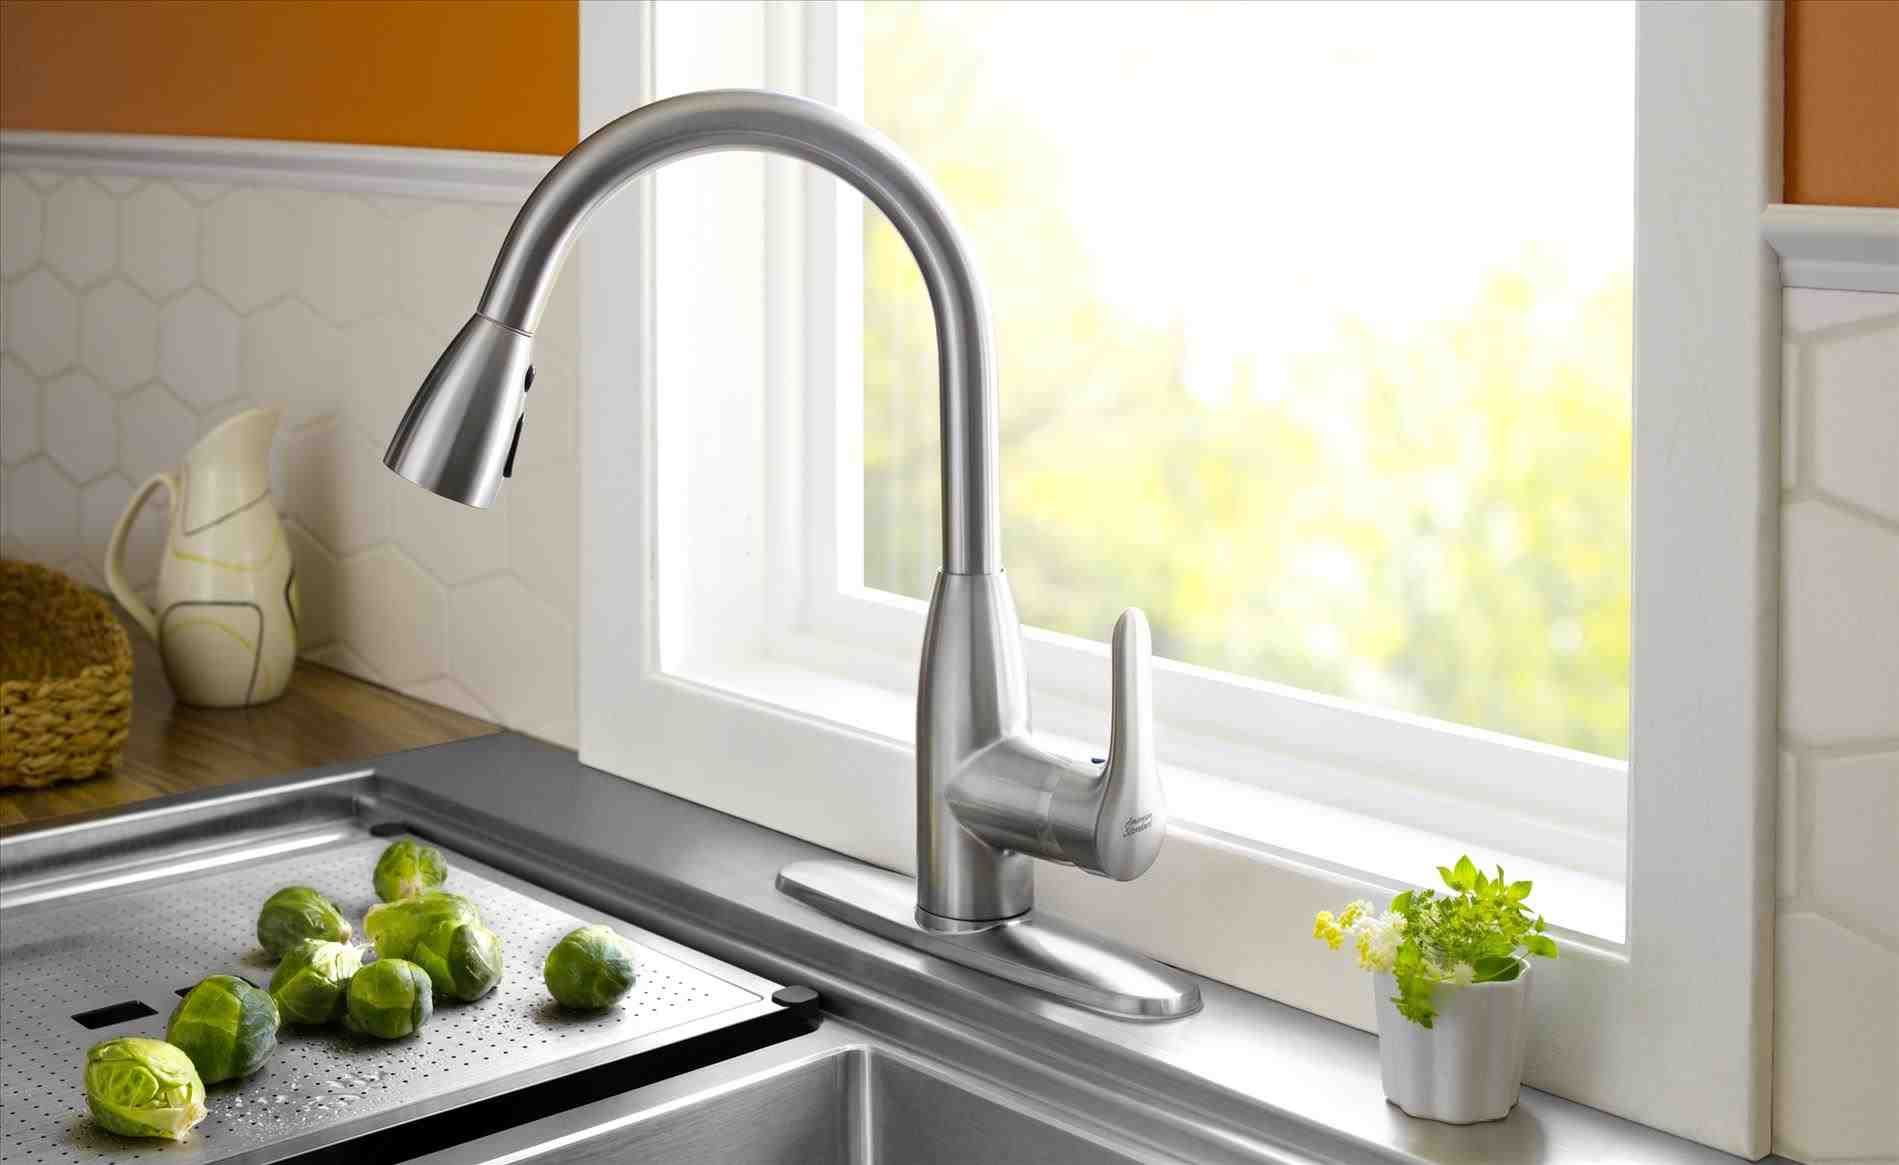 New Post oil rubbed bronze kitchen faucet with stainless sink